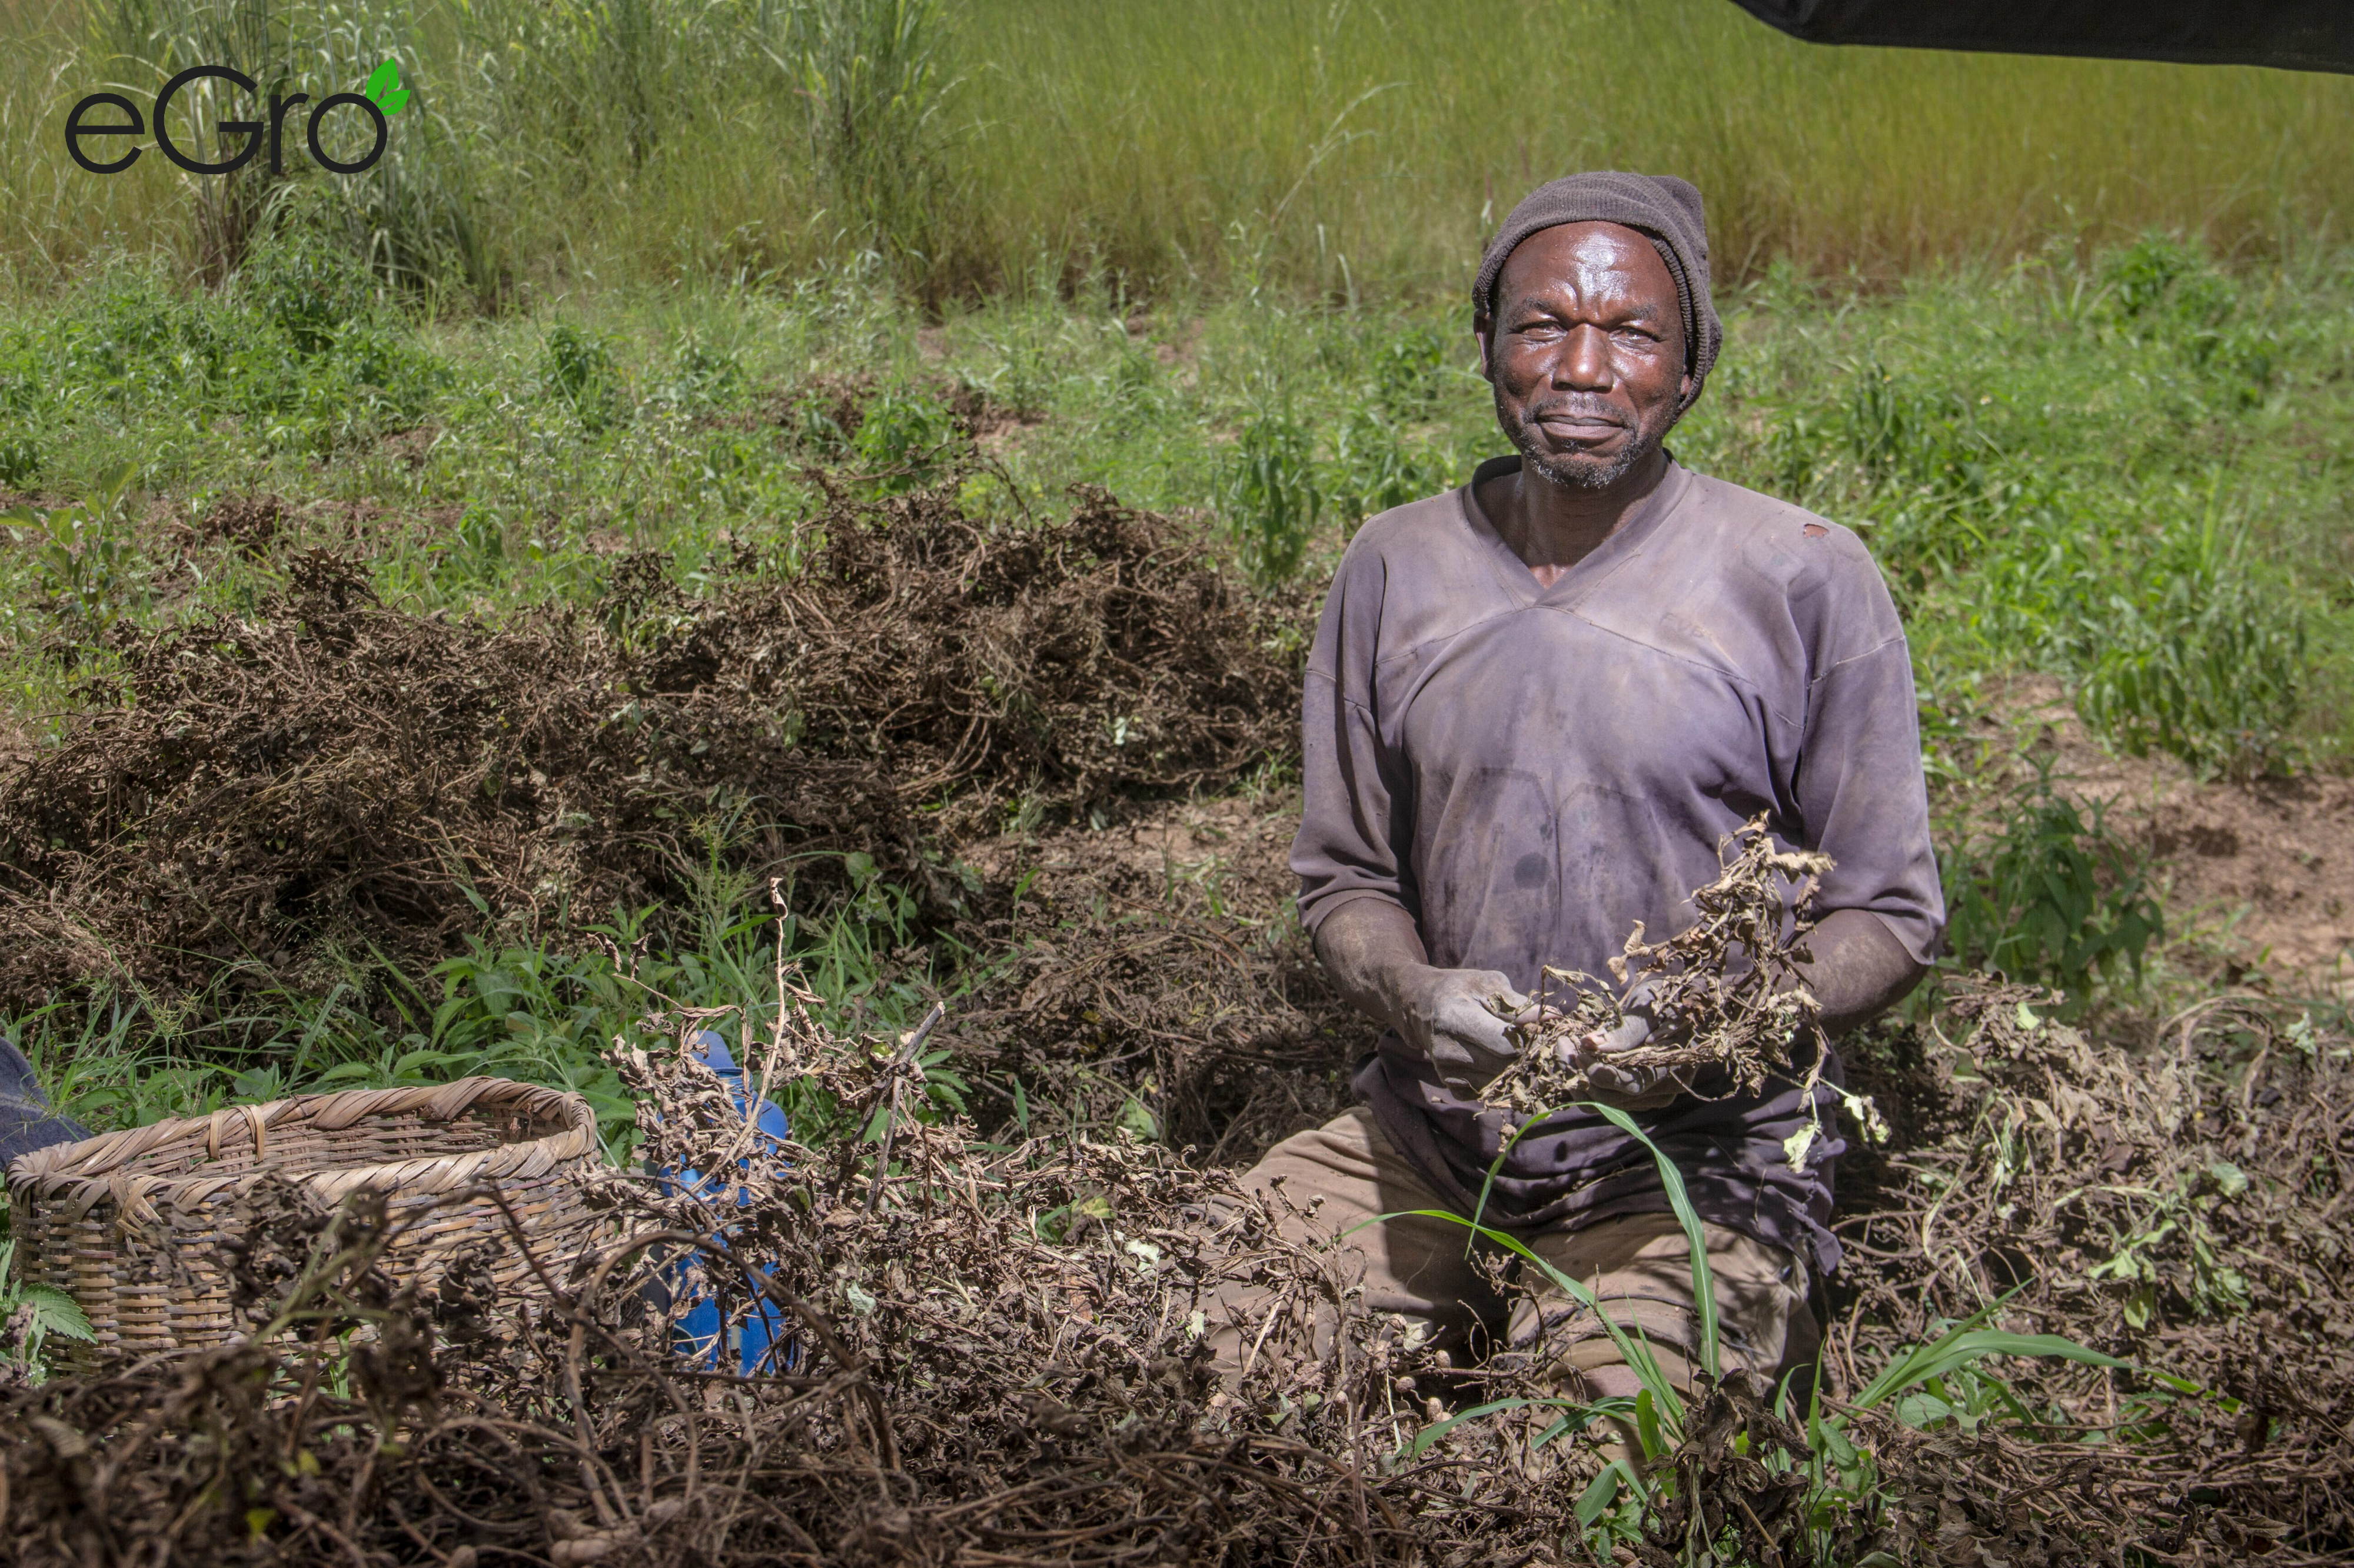 One of eGro´s farmers in his field digging out and picking the pods from the roots of the peanut plant.